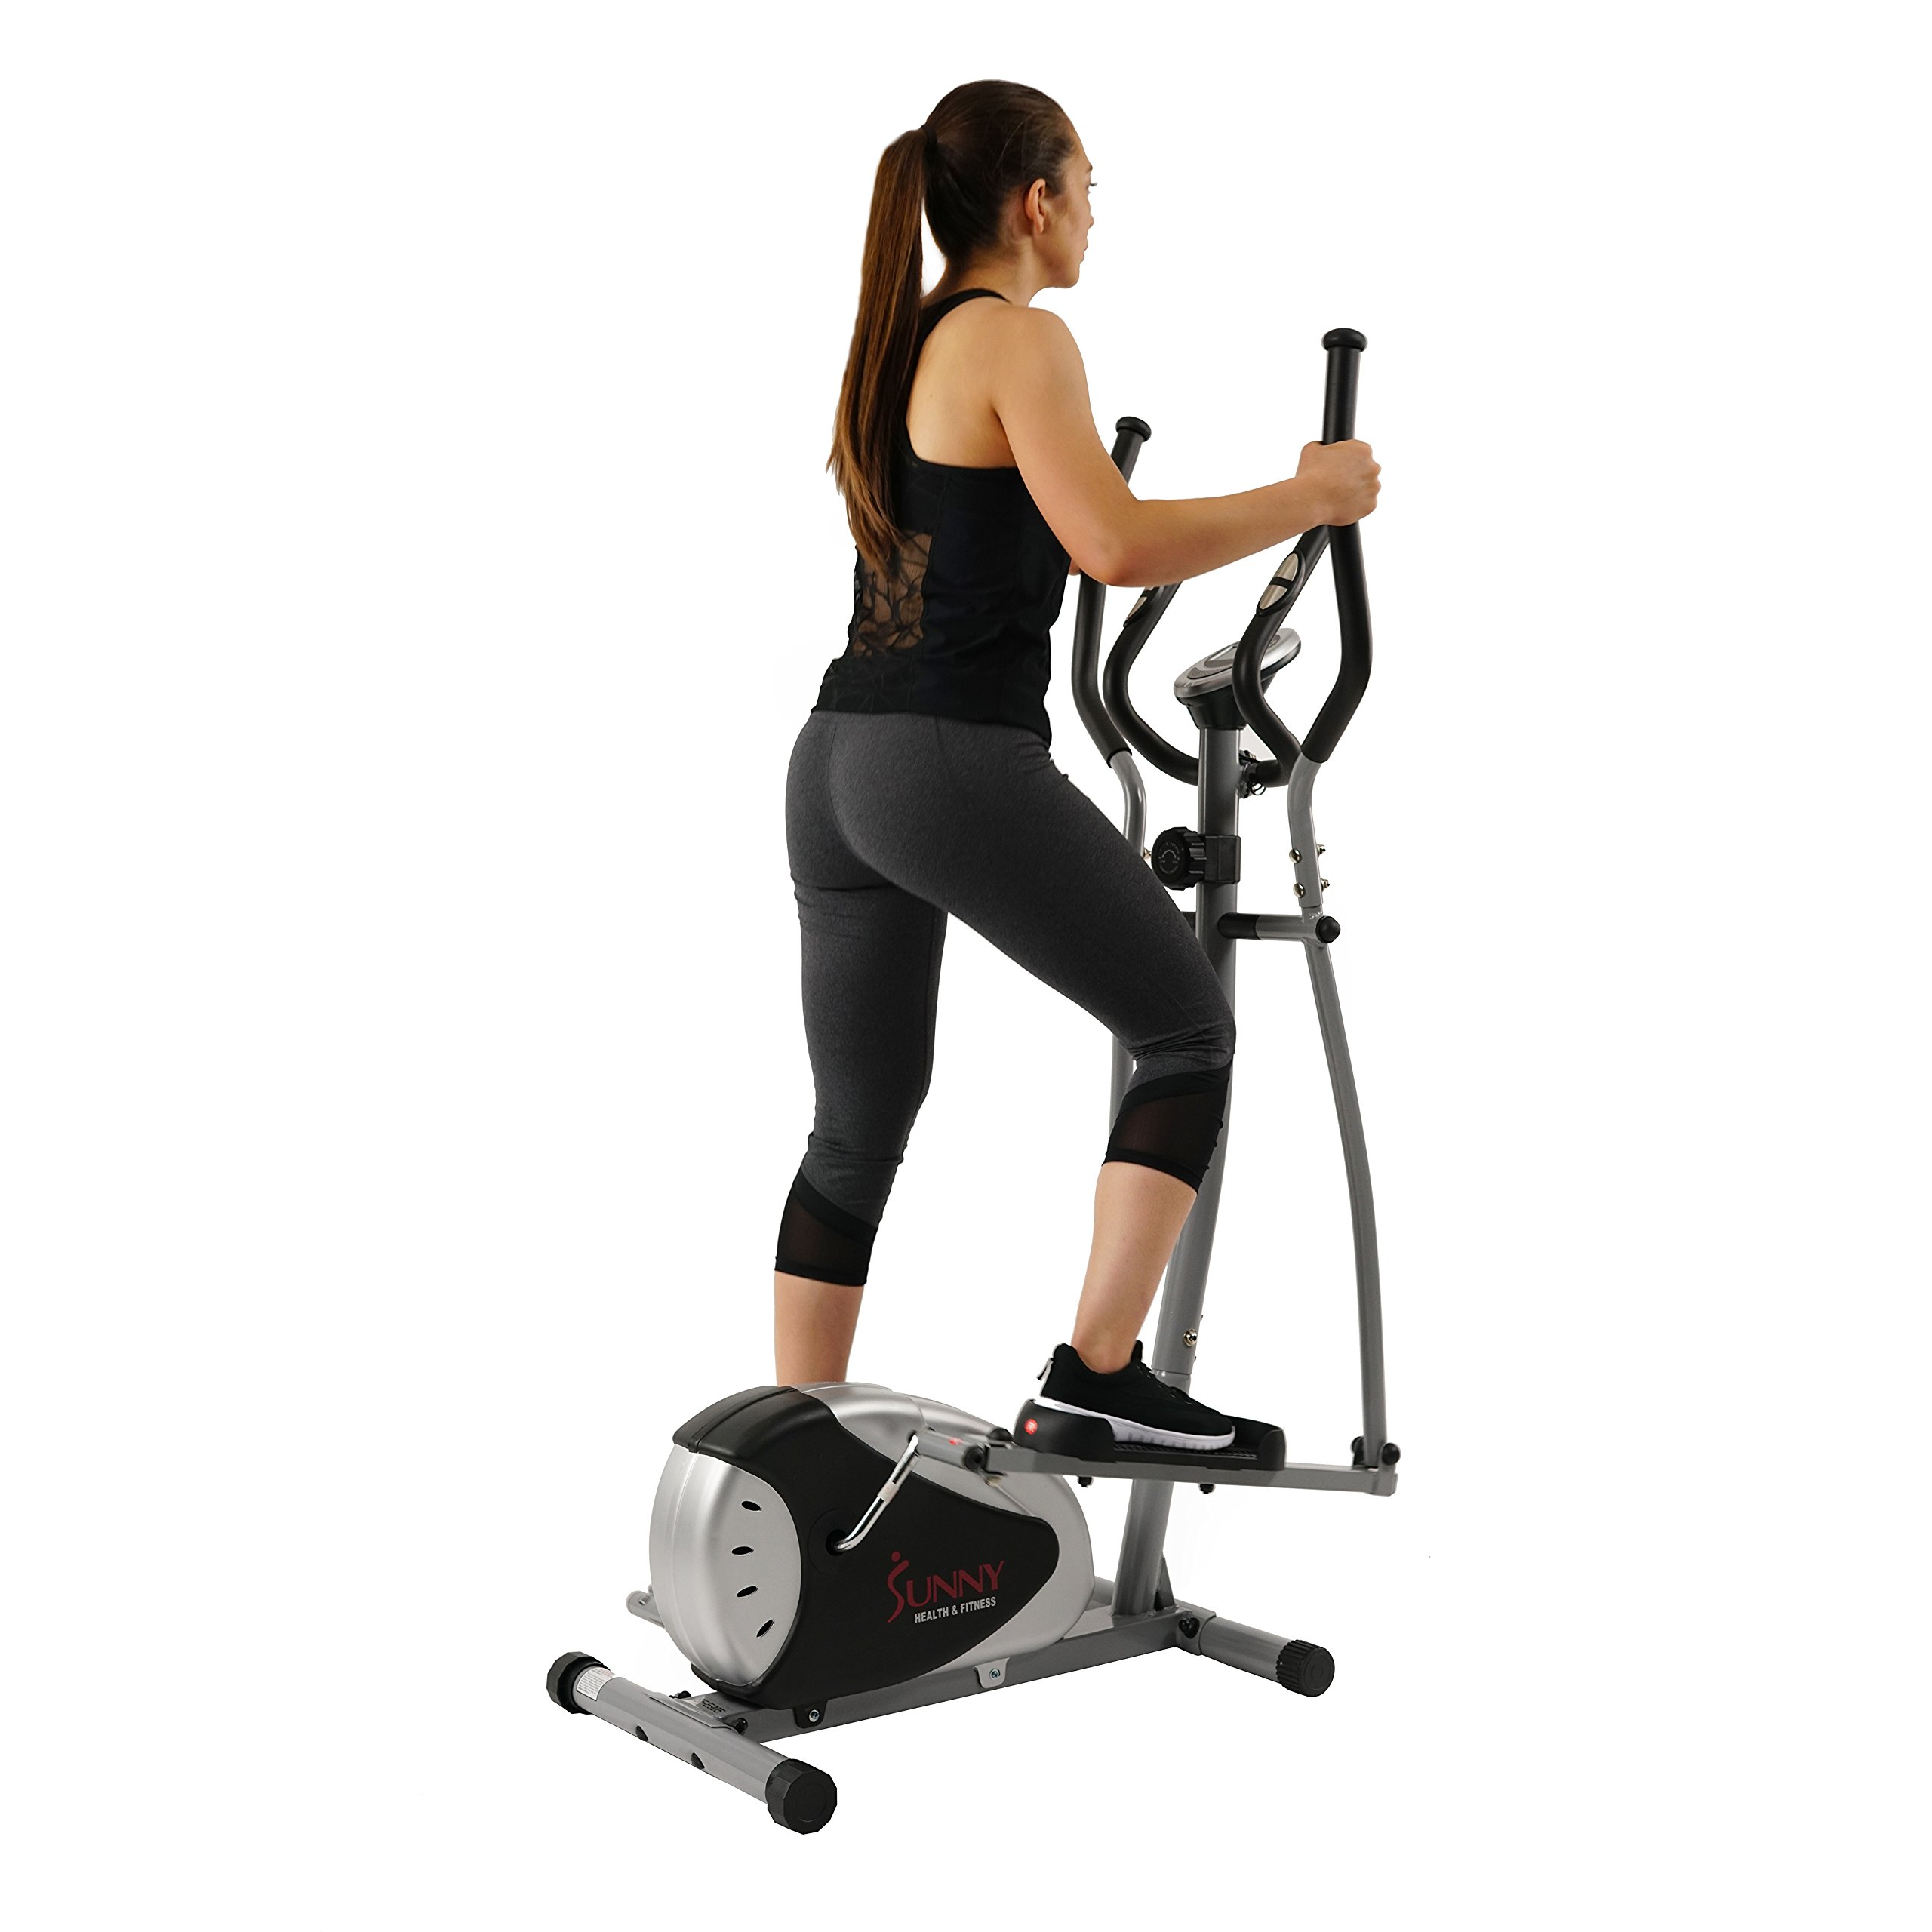 Magnetic Elliptical Machine Trainer by Sunny Health & Fitness - SF-E905 by Sunny Health & Fitness (Image #2)